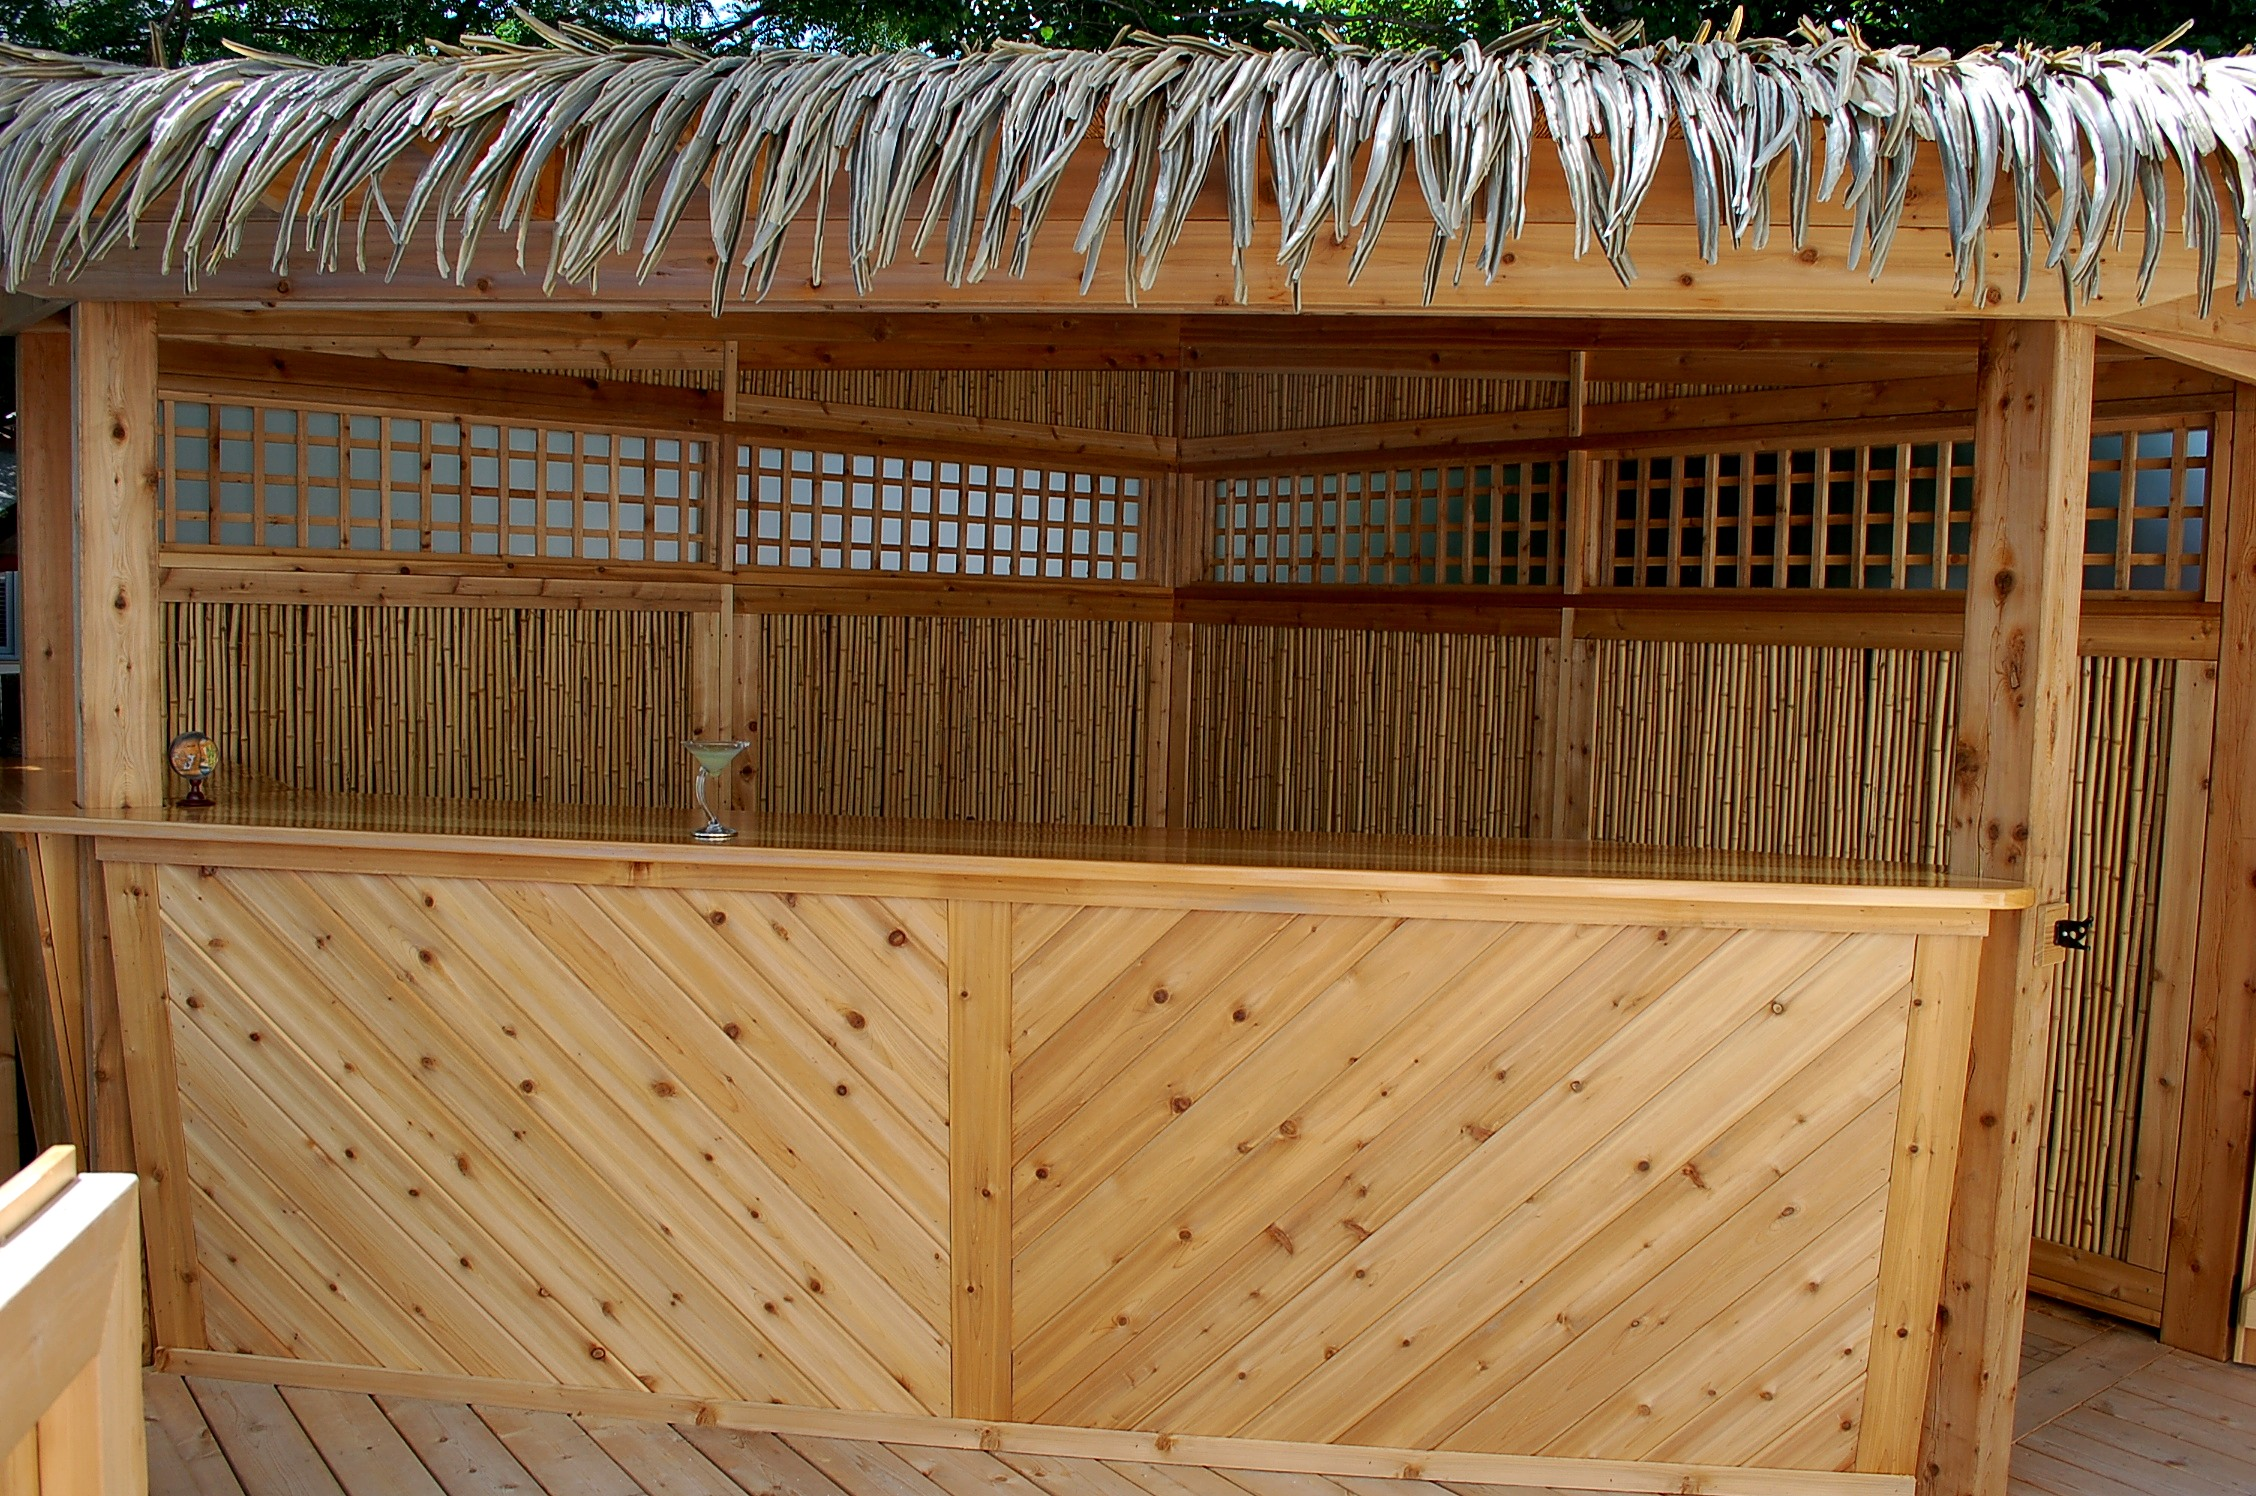 Tiki Bar Bamboo Walls and Lexan Windows.JPG